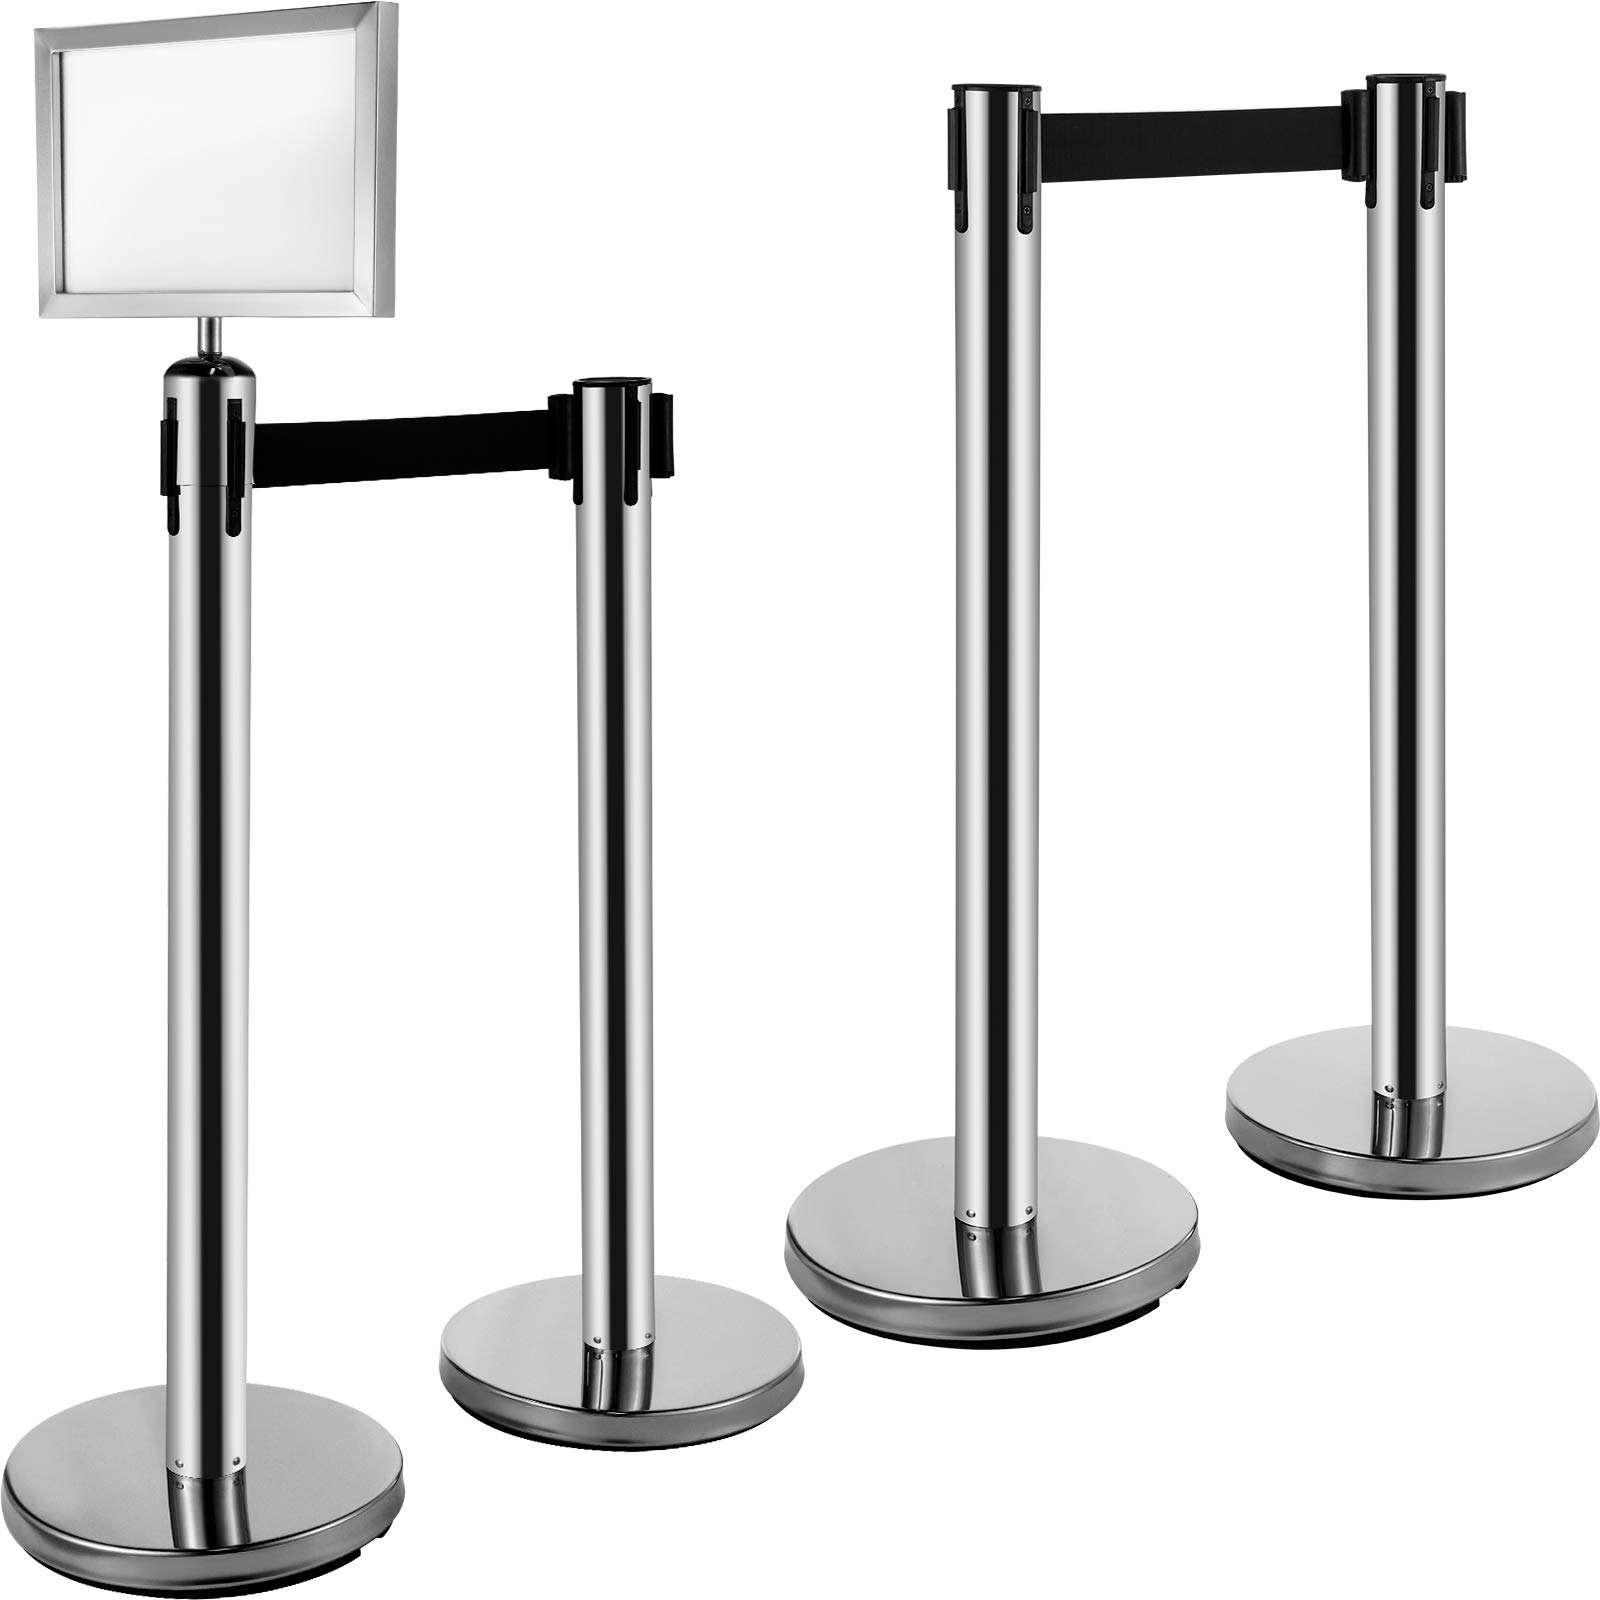 "VEVOR Stanchion Post Barriers 4-Set Line Dividers, Stainless Steel Stanchions with 6.6' Black Retractable Belts, Silver Stanchions with One Sign Frame, 34.6"" Queue Safety Stanchions"